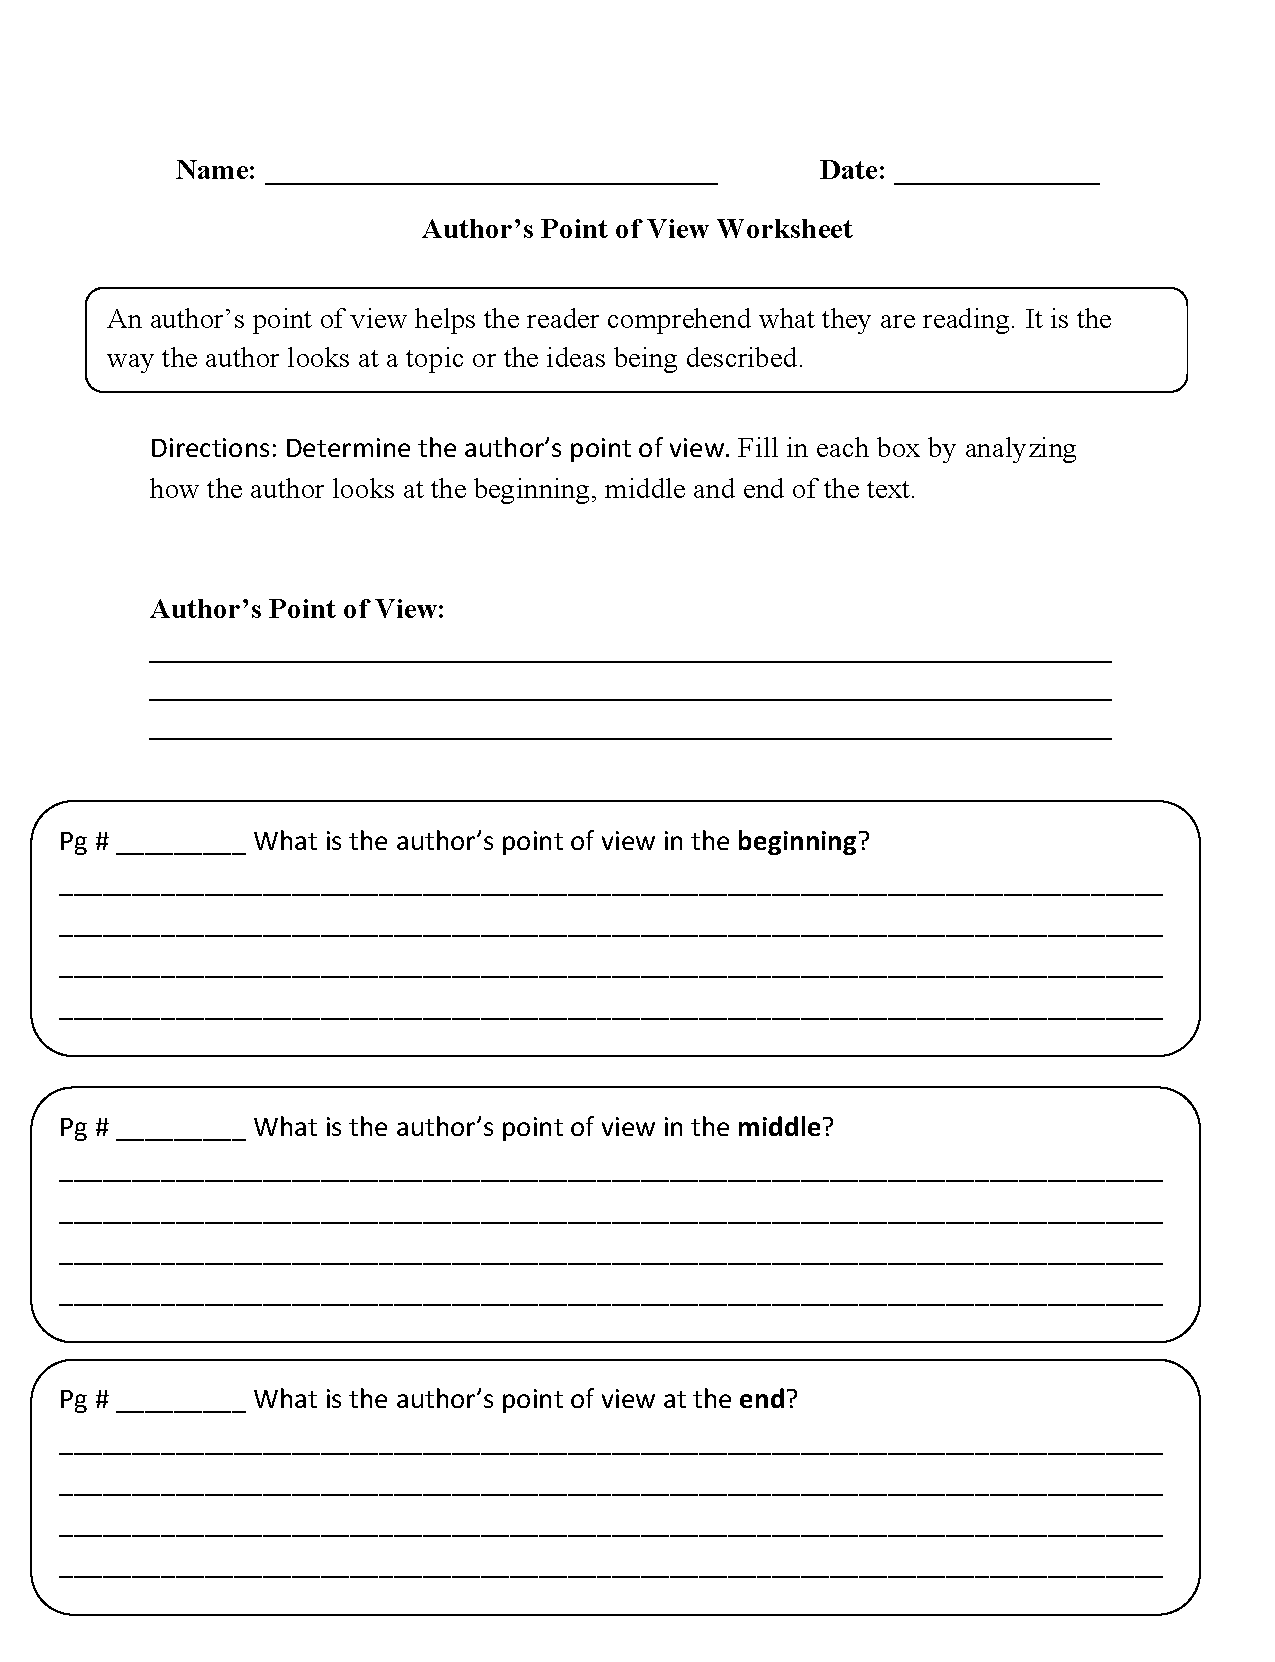 Weirdmailus  Scenic Englishlinxcom  Point Of View Worksheets With Goodlooking Point Of View Worksheets With Comely Easy Worksheet Also First Grade Spanish Worksheets In Addition Transition Word Worksheets And On The Banks Of Plum Creek Worksheets As Well As Free Printable Reading Comprehension Worksheets For Th Grade Additionally Word Puzzle Worksheets From Englishlinxcom With Weirdmailus  Goodlooking Englishlinxcom  Point Of View Worksheets With Comely Point Of View Worksheets And Scenic Easy Worksheet Also First Grade Spanish Worksheets In Addition Transition Word Worksheets From Englishlinxcom